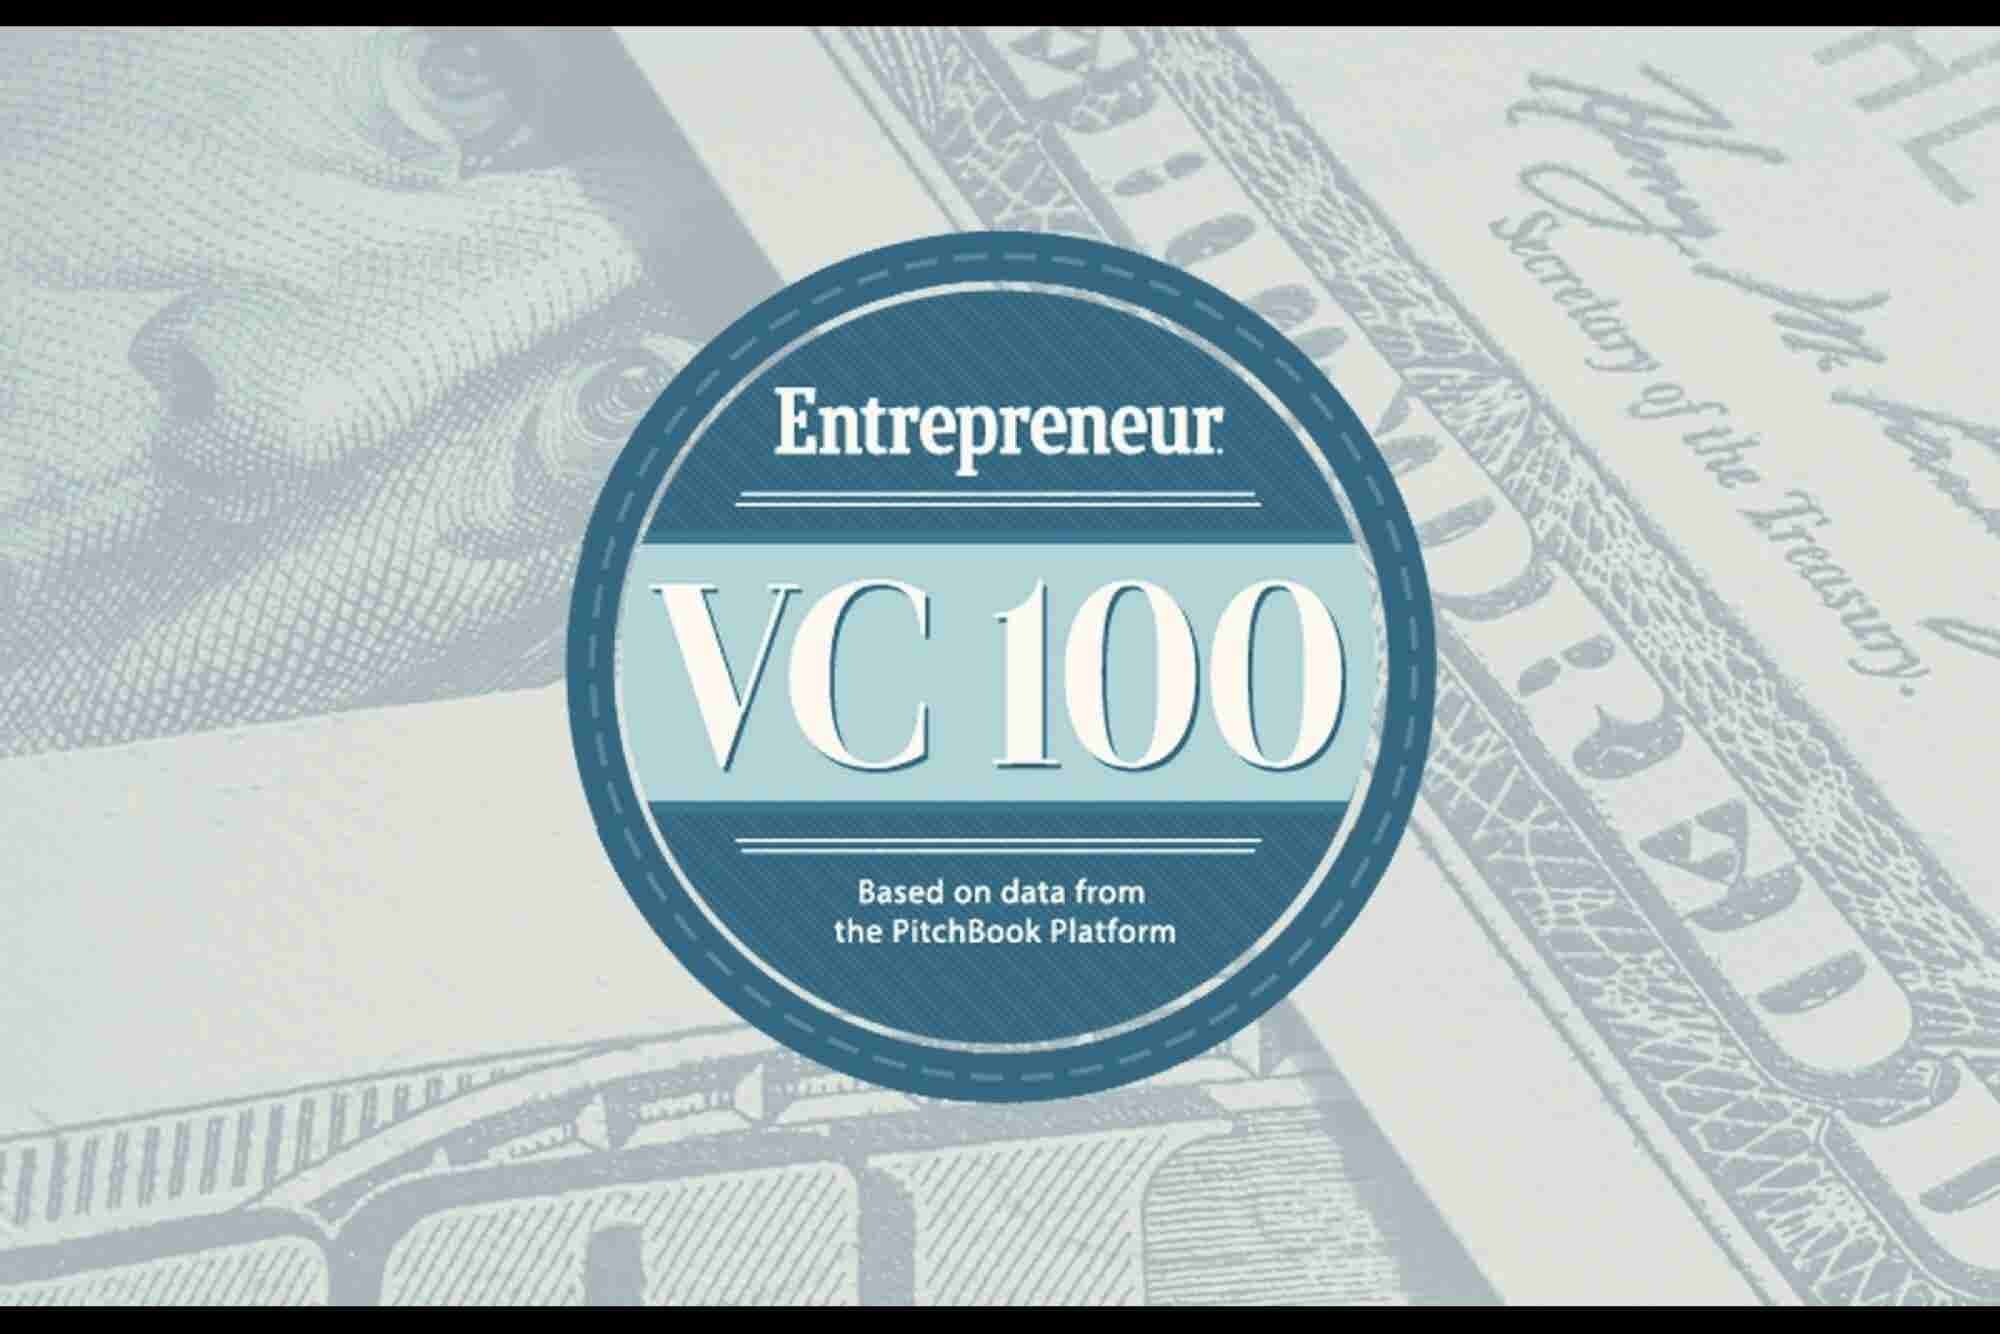 Talk Like a VC Insider With This Gif Glossary